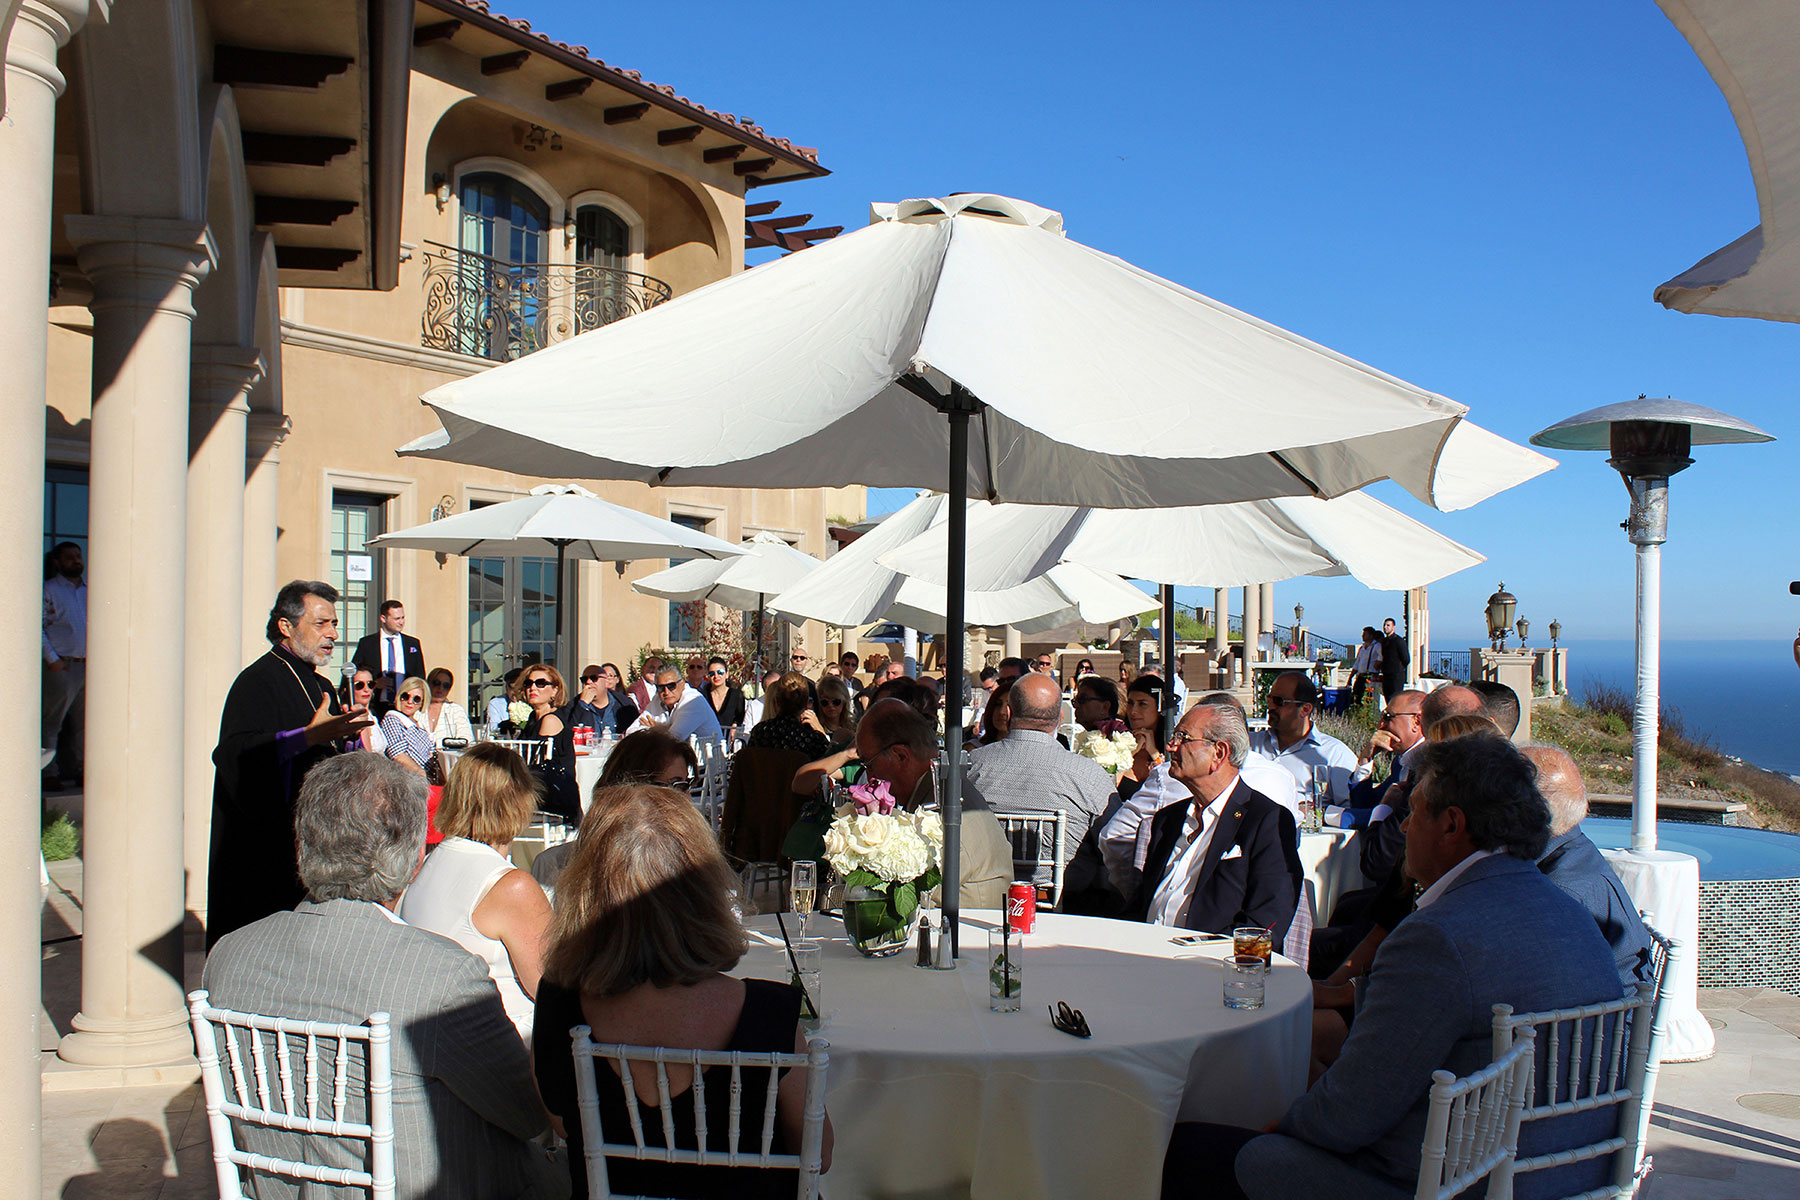 Armenian American Museum Board of Trustees Co-Chair Archbishop Hovnan Derderian Delivers Remarks at Malibu Reception